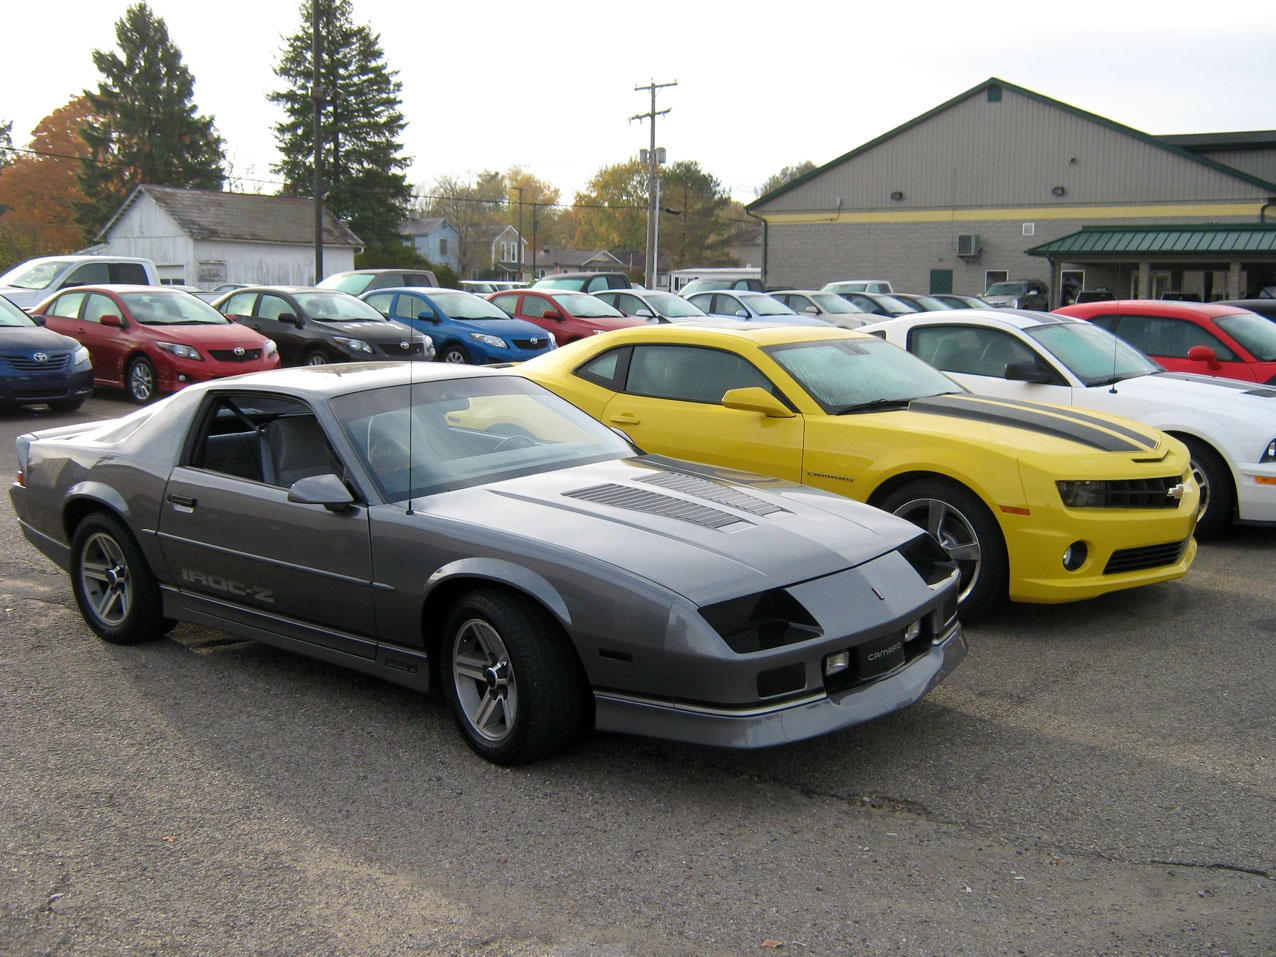 A contribution by david armstead from zanesville ohio usa the grey 1988 chevrolet camaro iroc z belongs to mr armstead